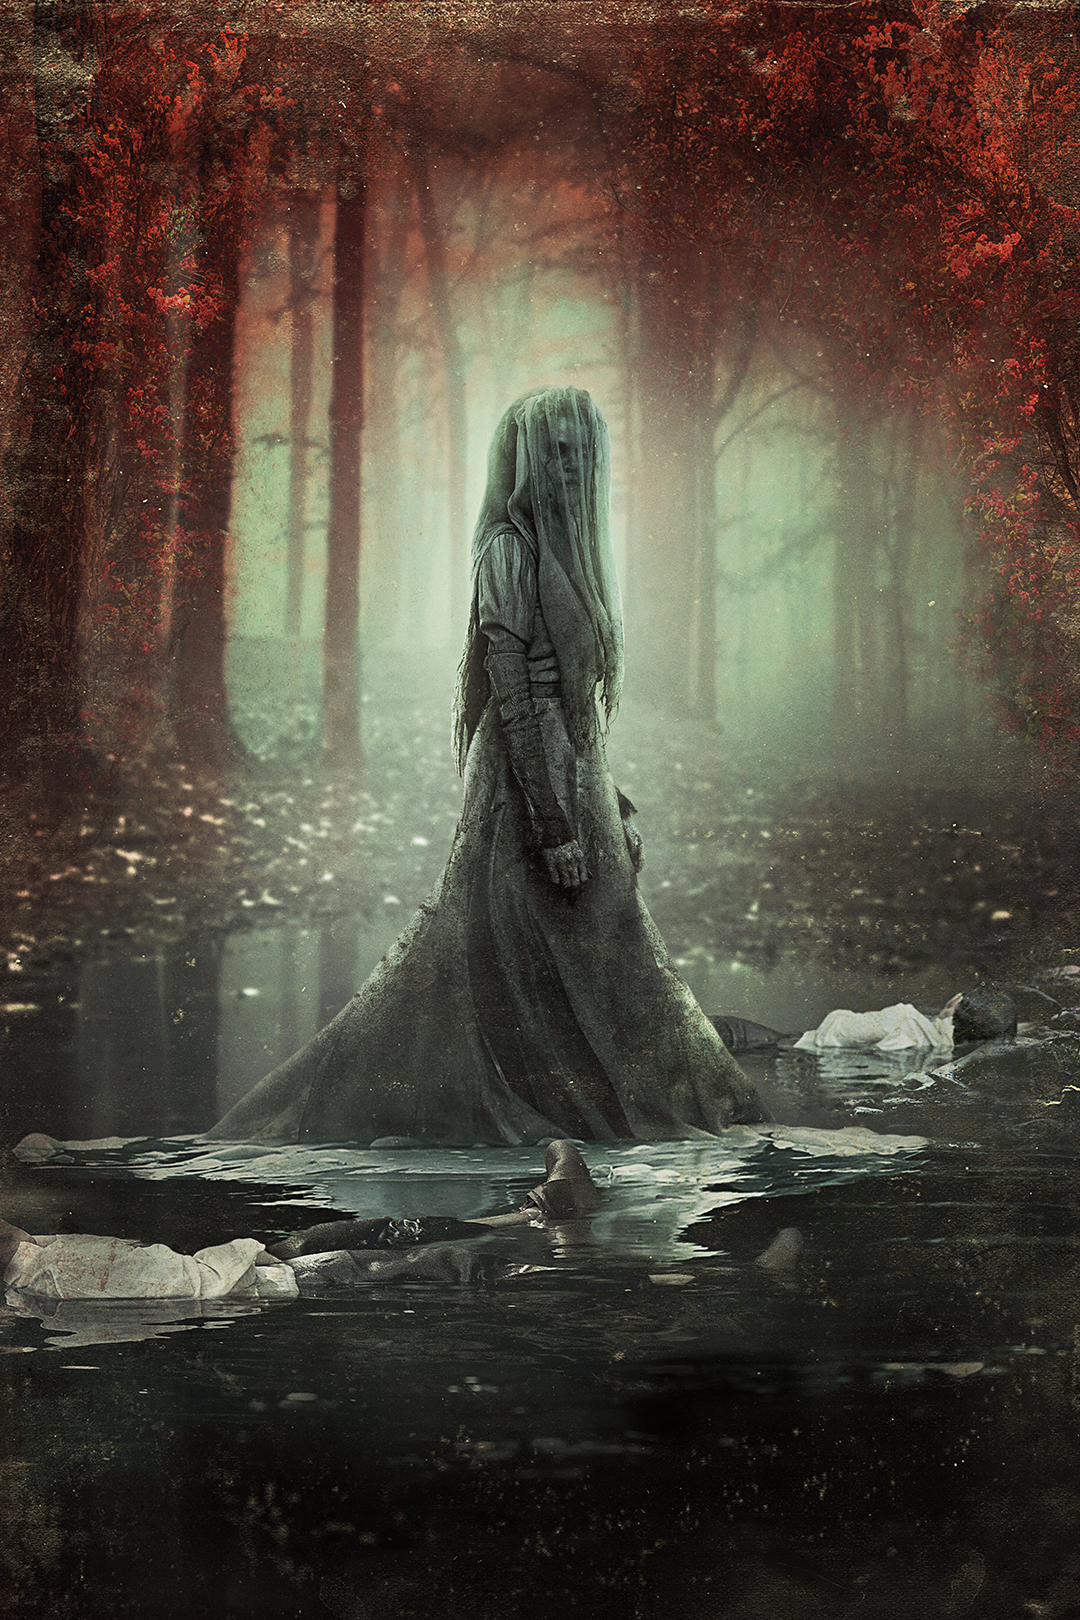 the-curse-of-la-llorona-ka-1080.jpg